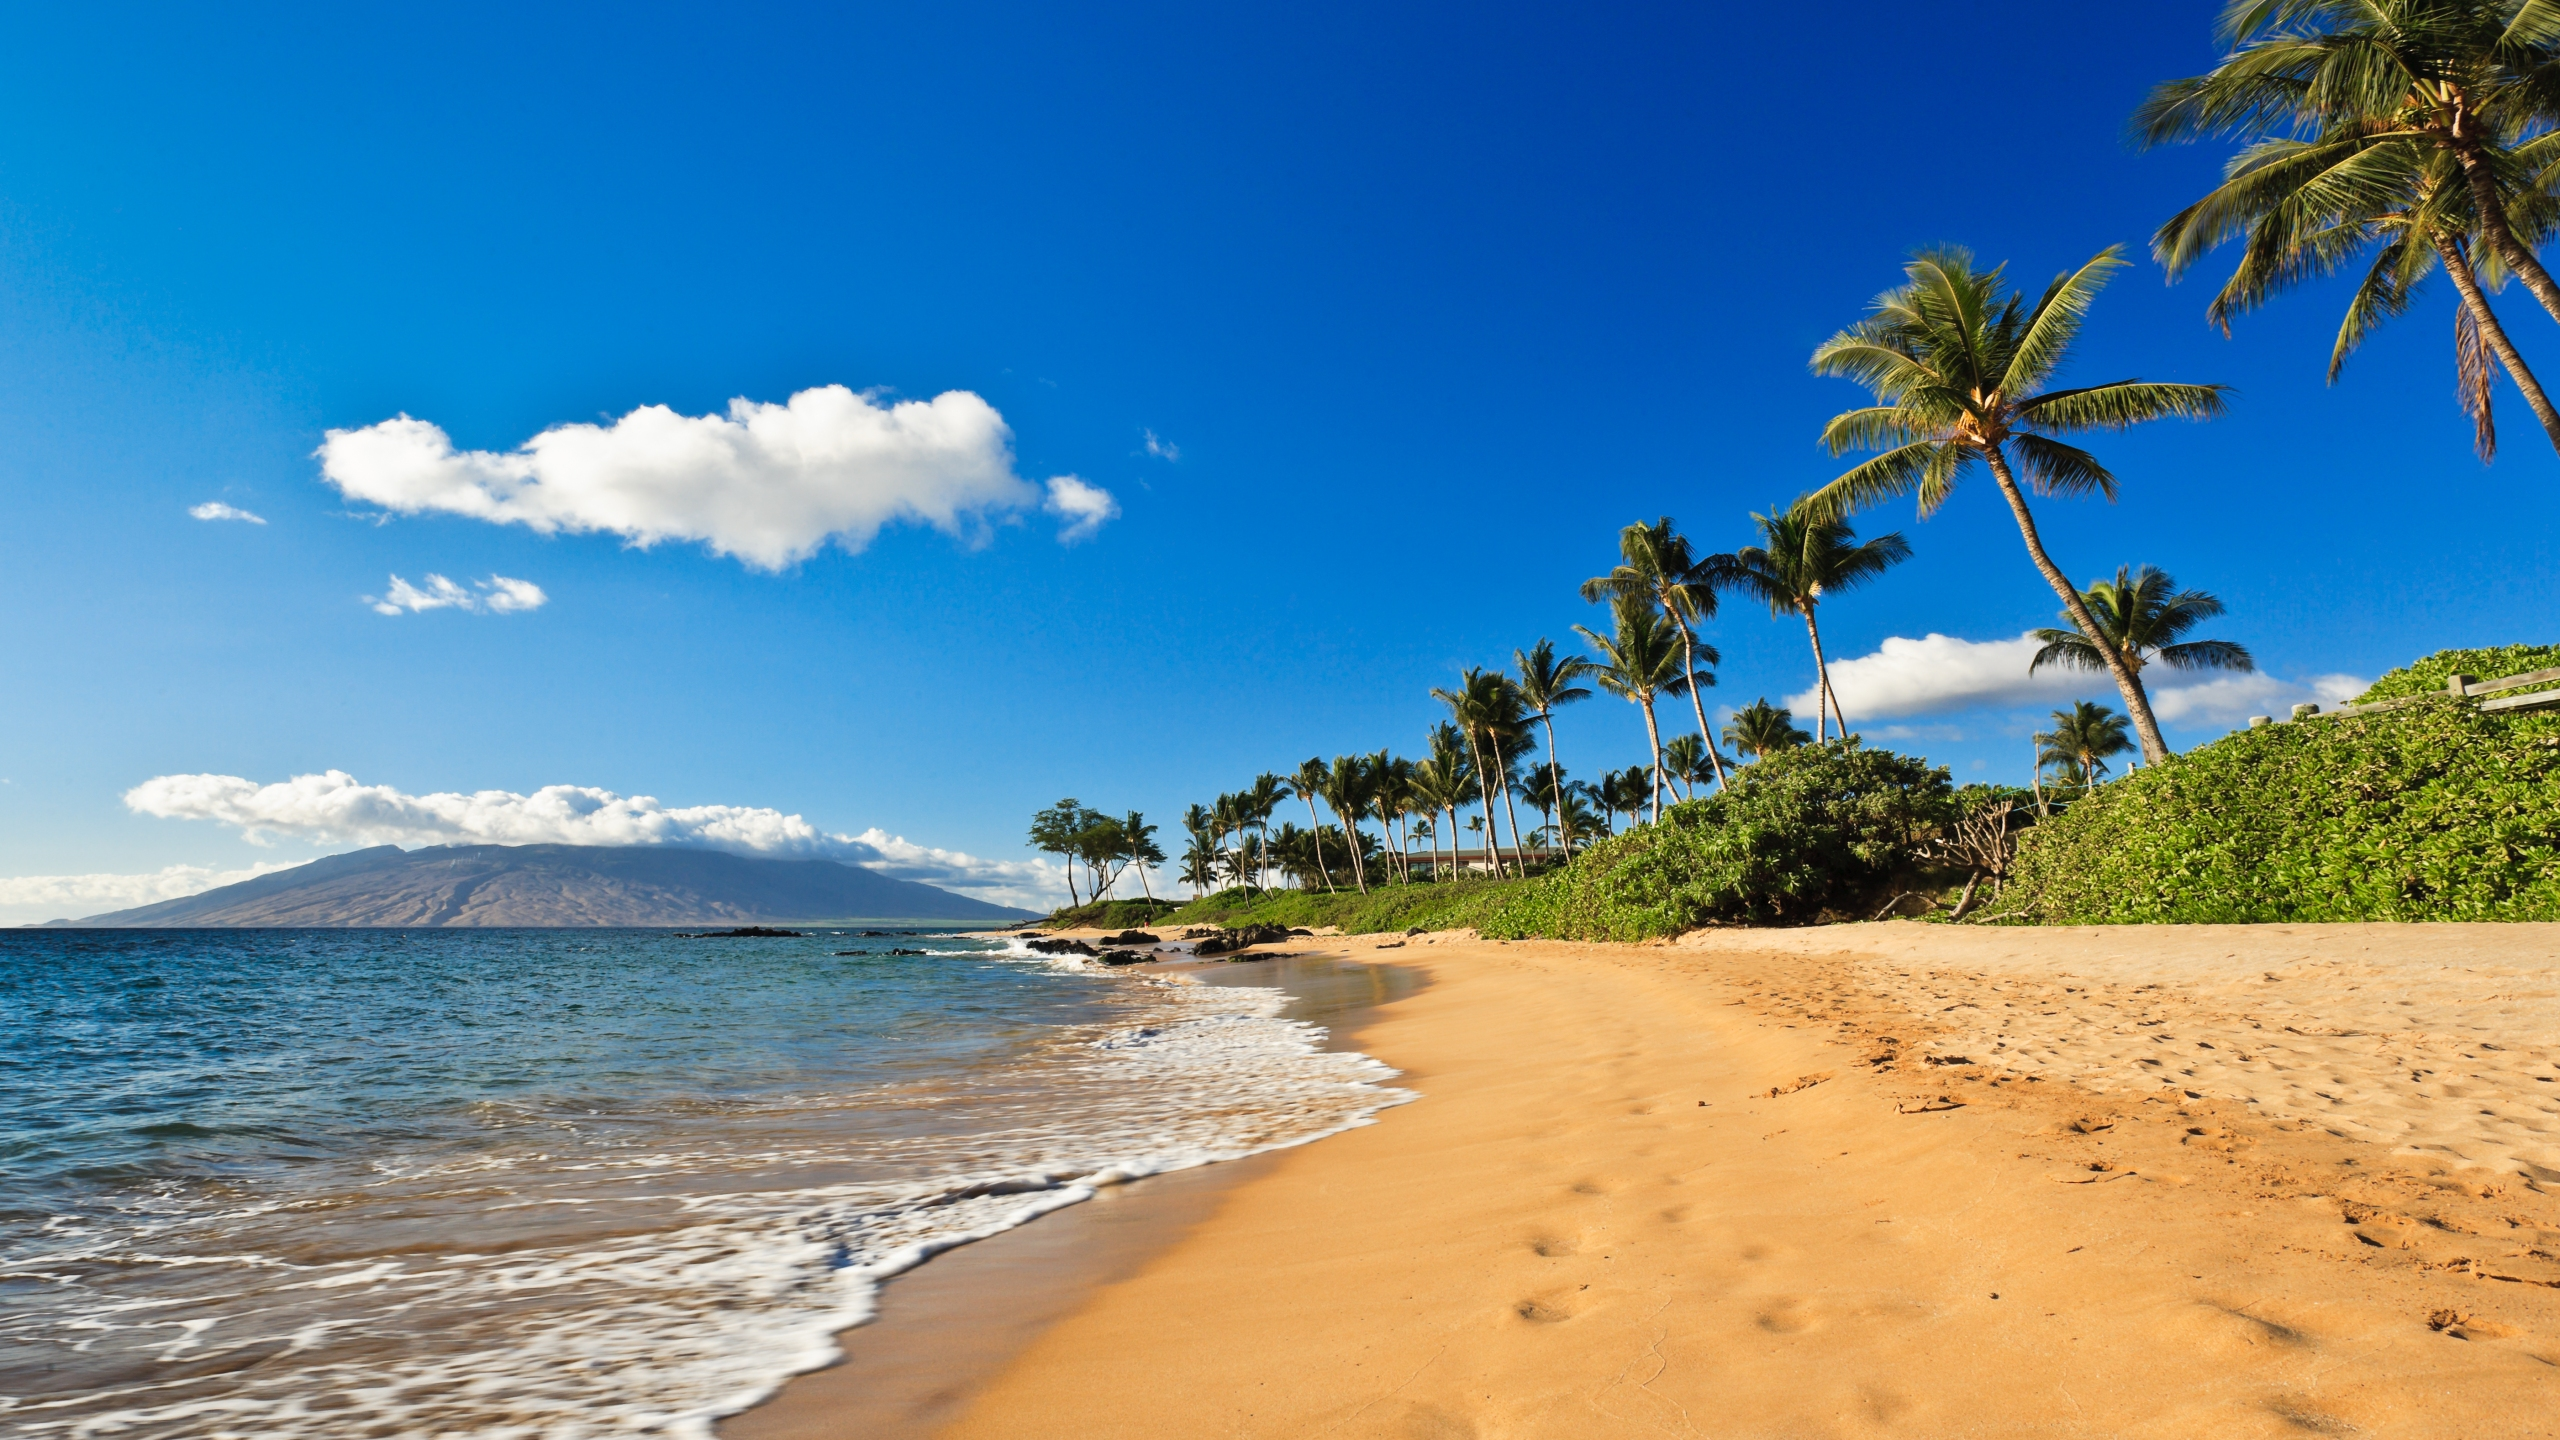 The beach in Wailea, Maui, Hawaii, is seen in a file photo. (iStock/Getty Images Plus)